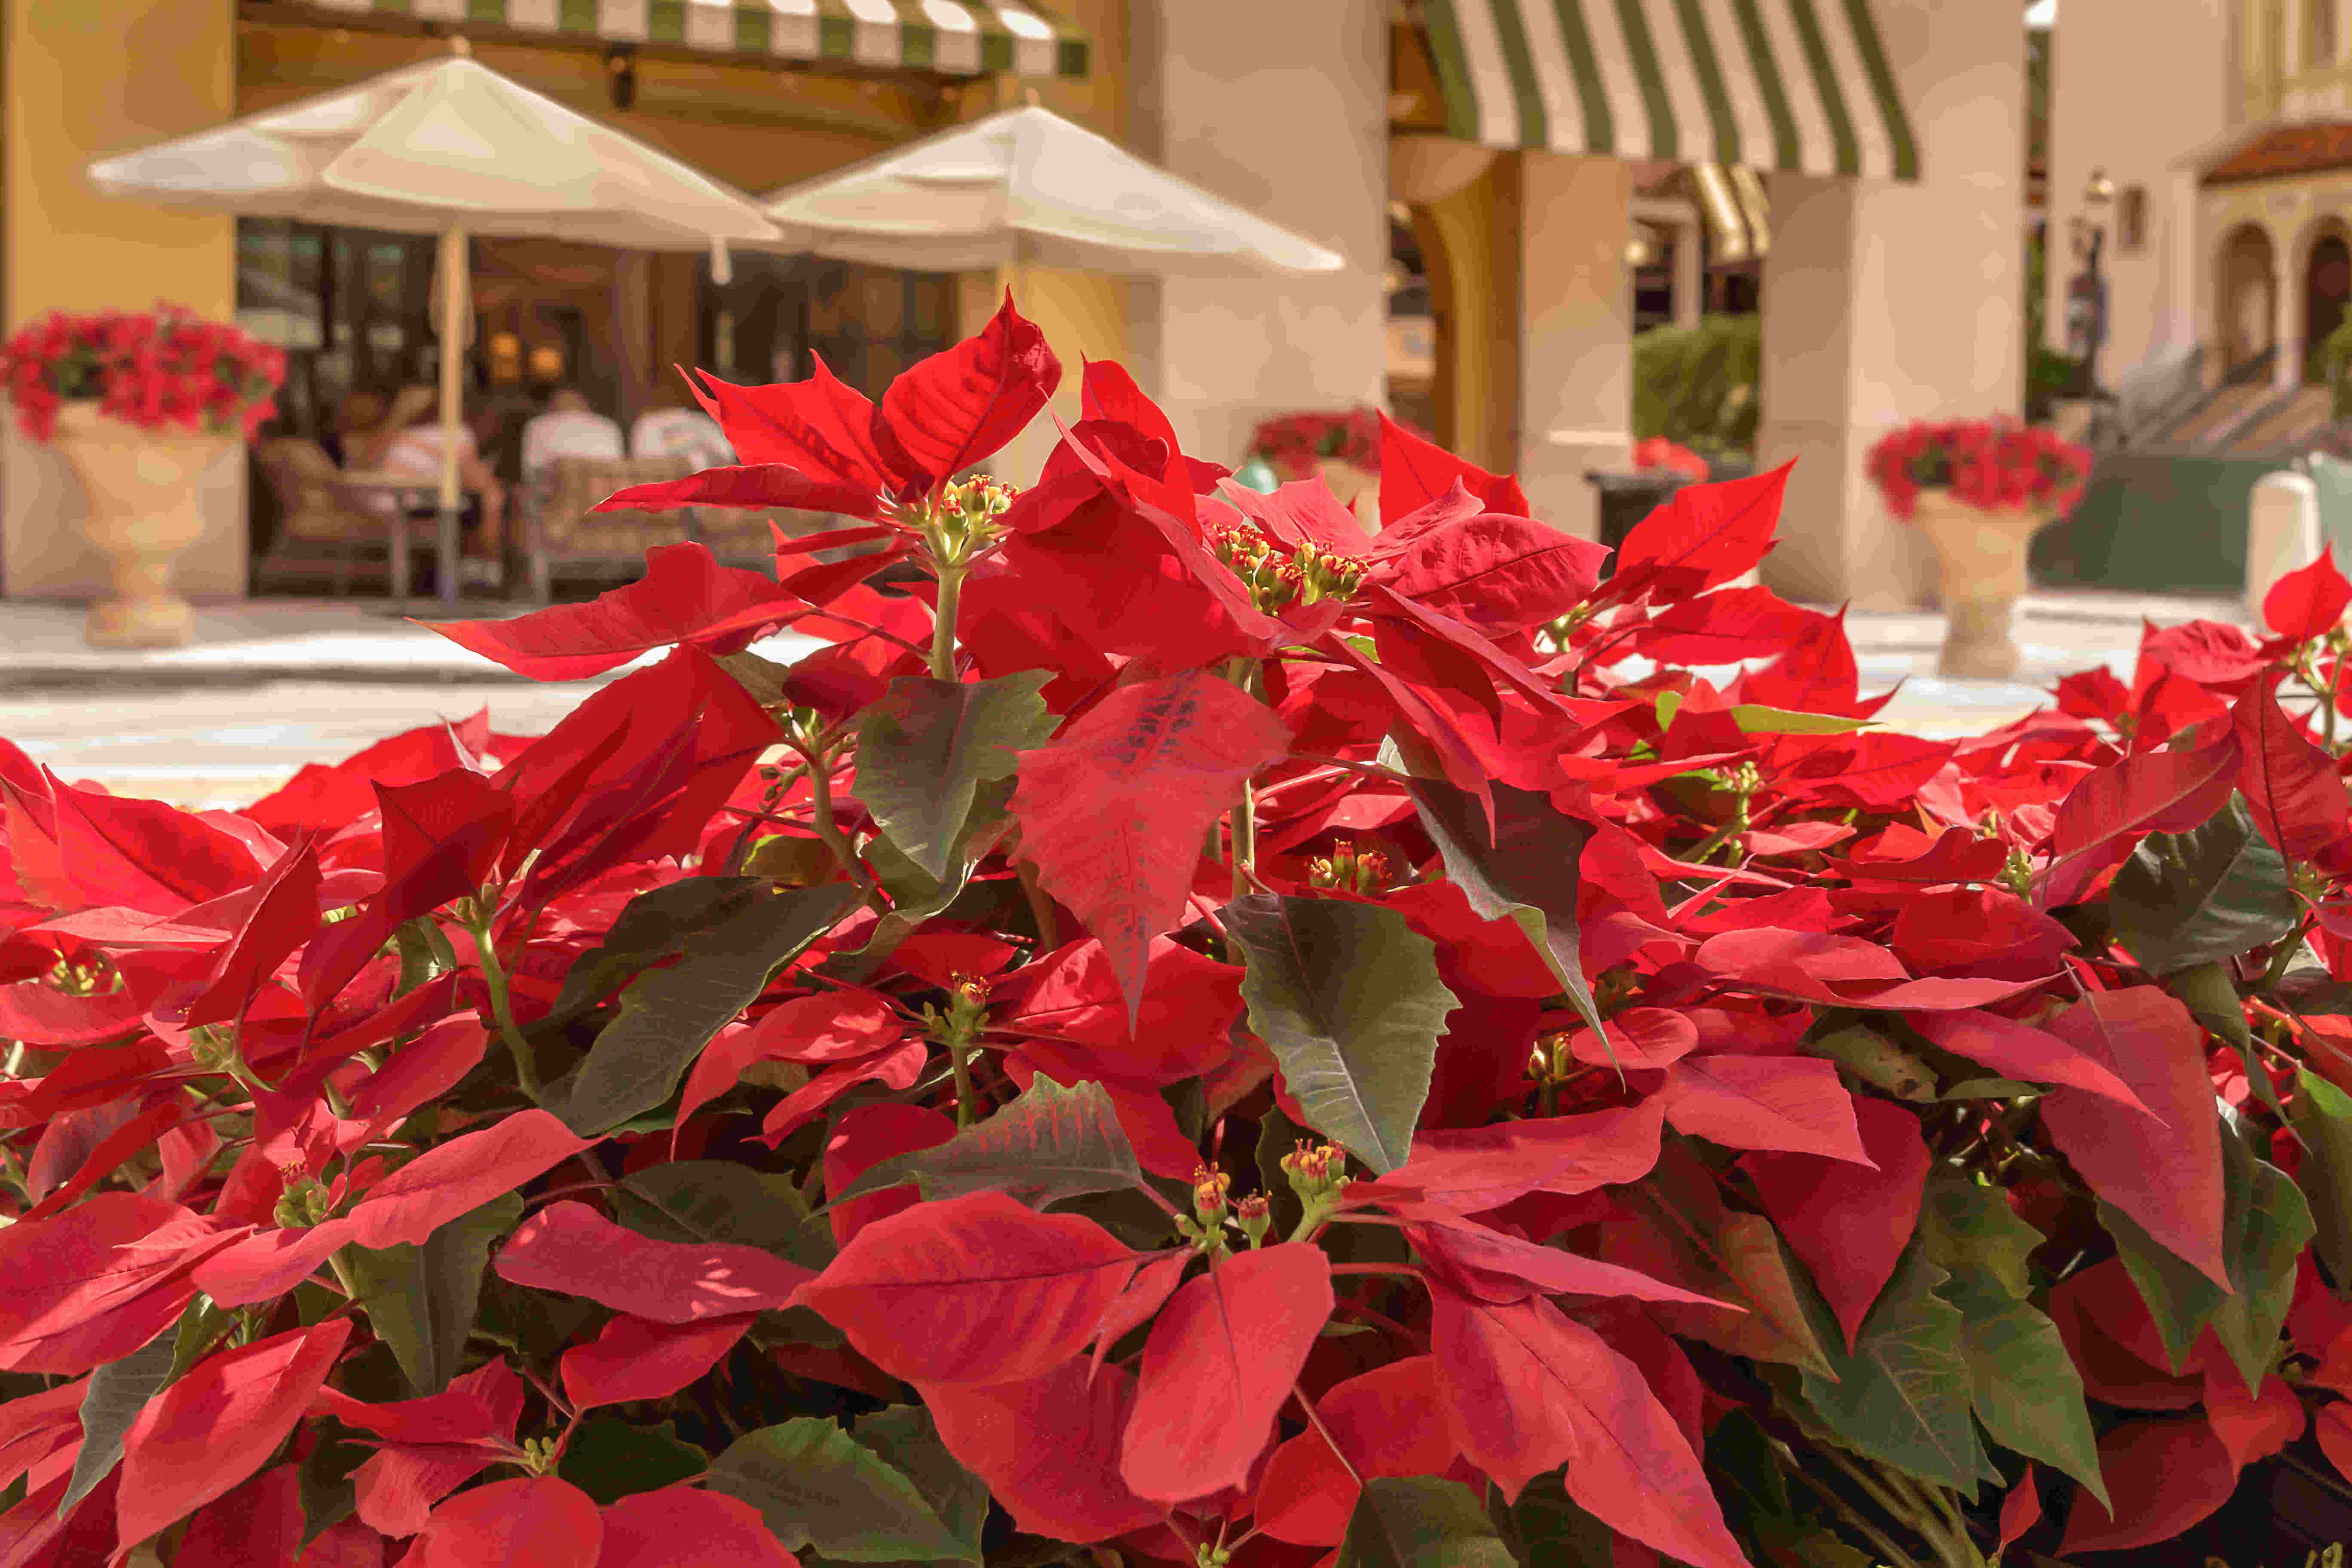 Decorating Your Office Space with Holiday Plants